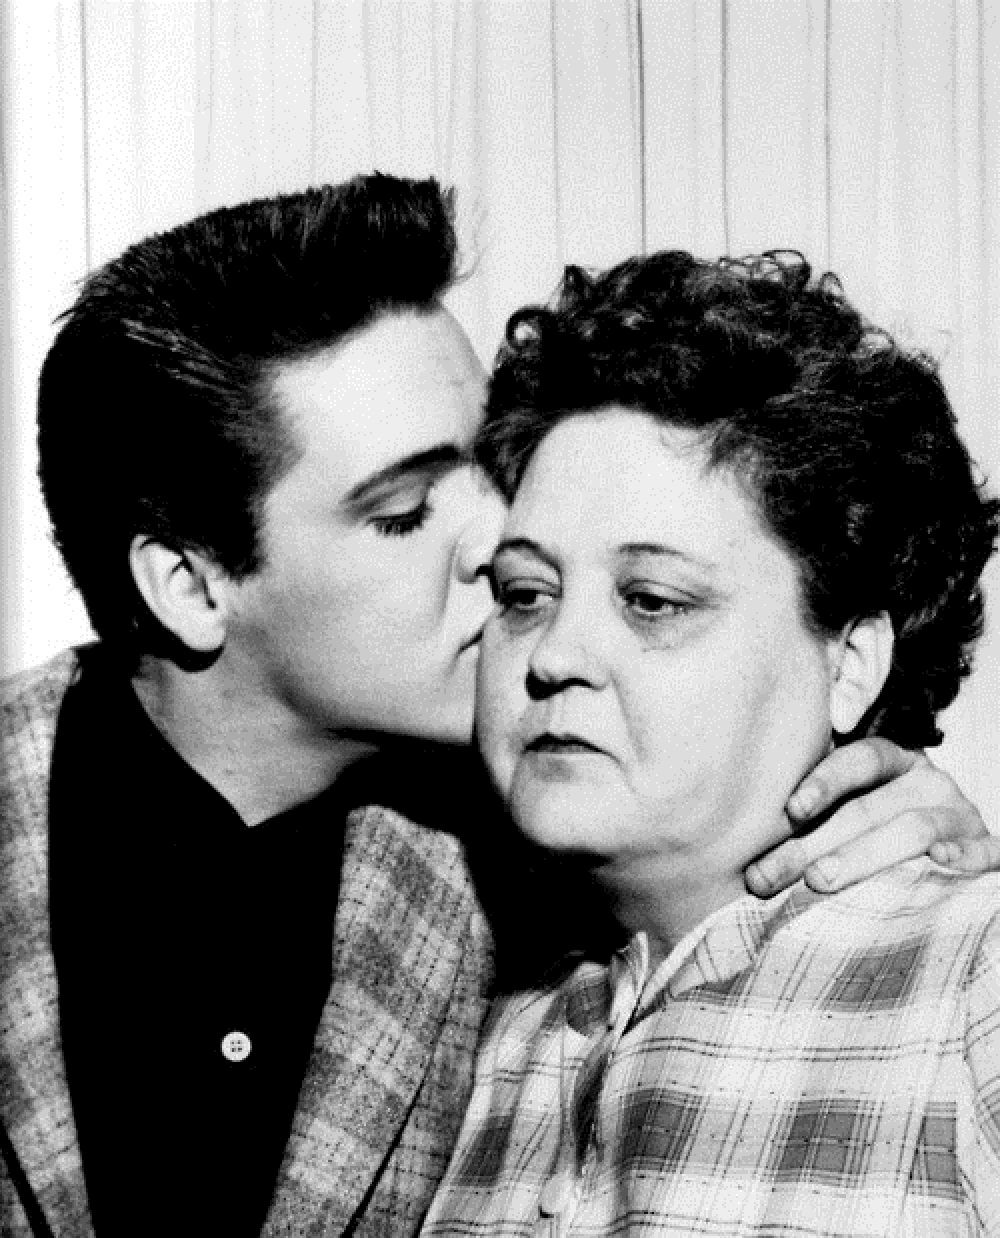 ELVIS GIVES HIS MOM A KISS